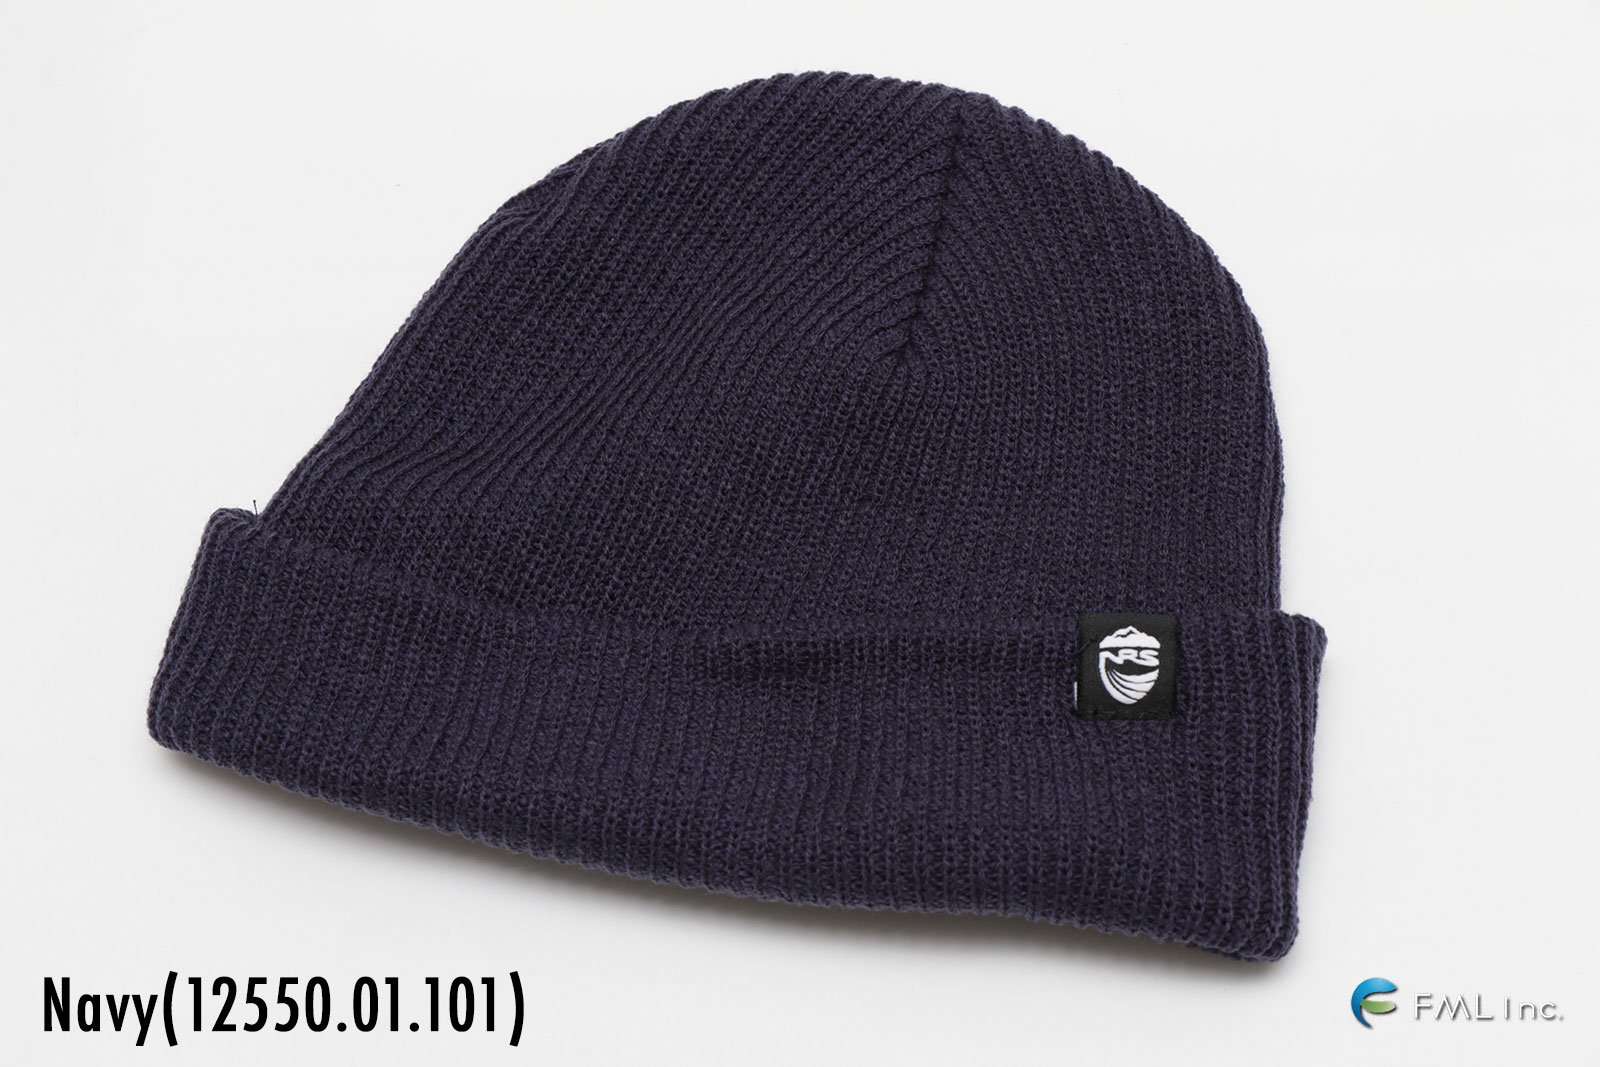 <img class='new_mark_img1' src='https://img.shop-pro.jp/img/new/icons5.gif' style='border:none;display:inline;margin:0px;padding:0px;width:auto;' />NRS Slouch Beanie 2022 (12550.01)